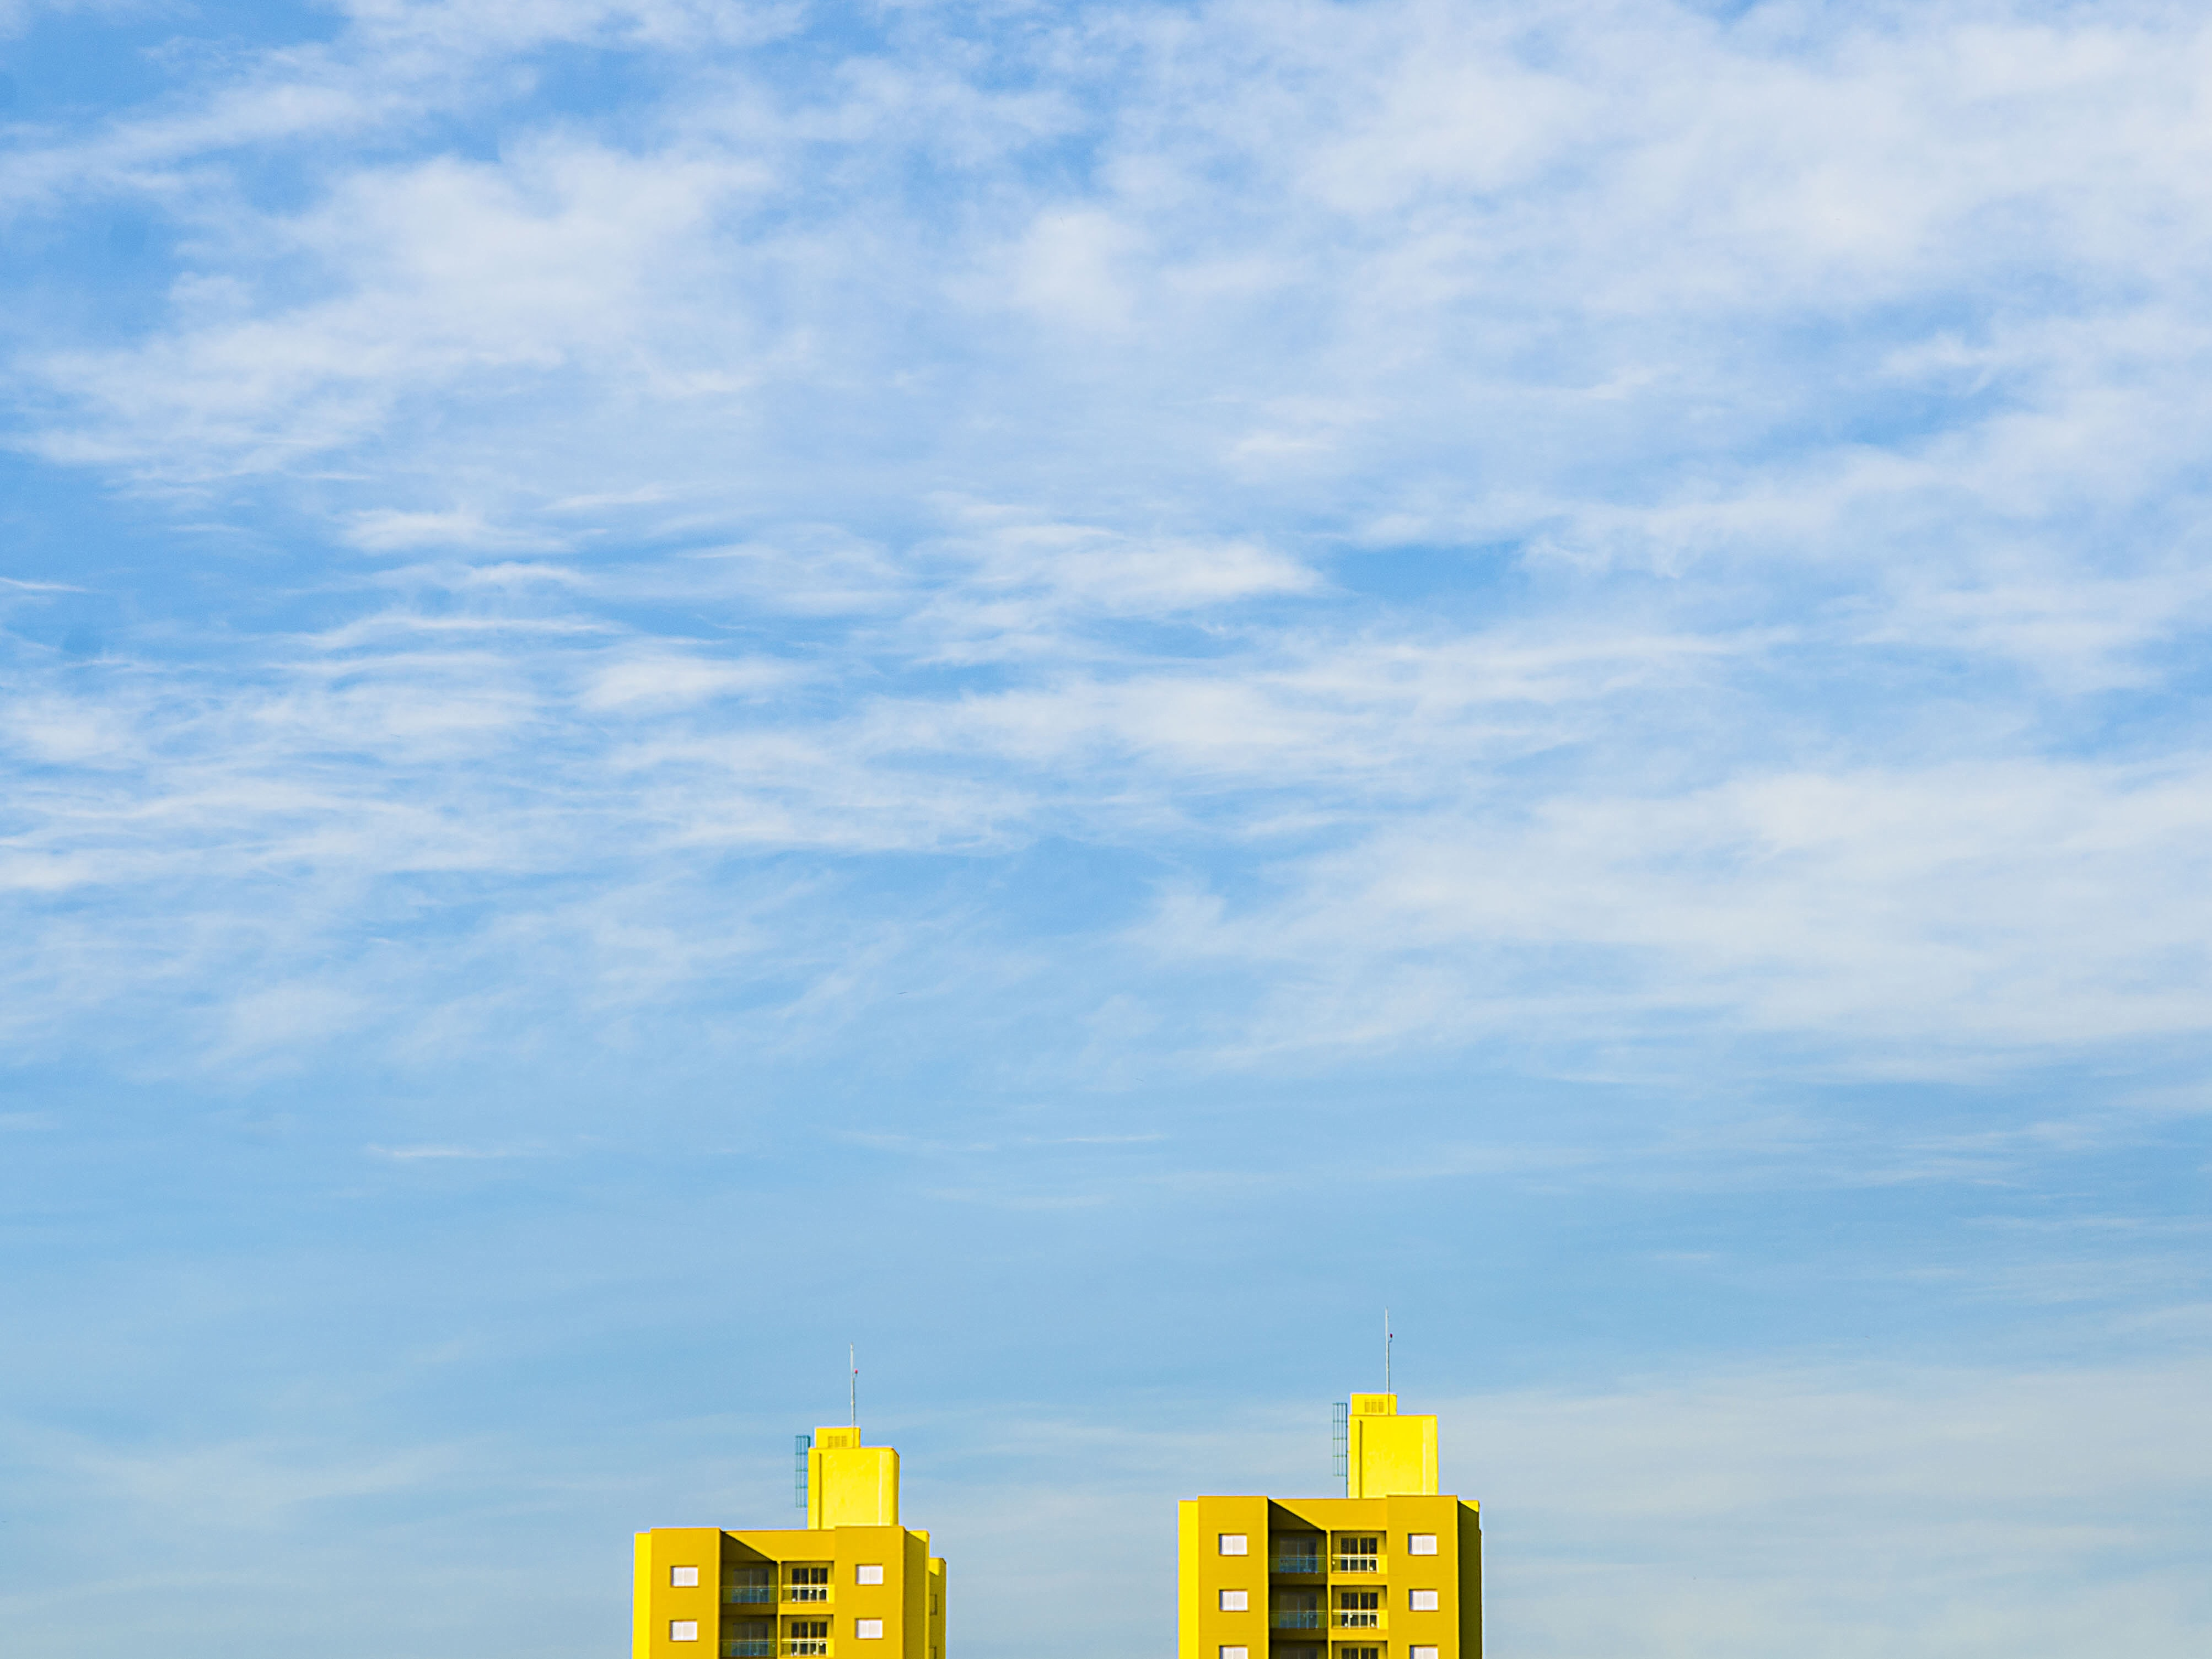 close up photography of two yellow buildings